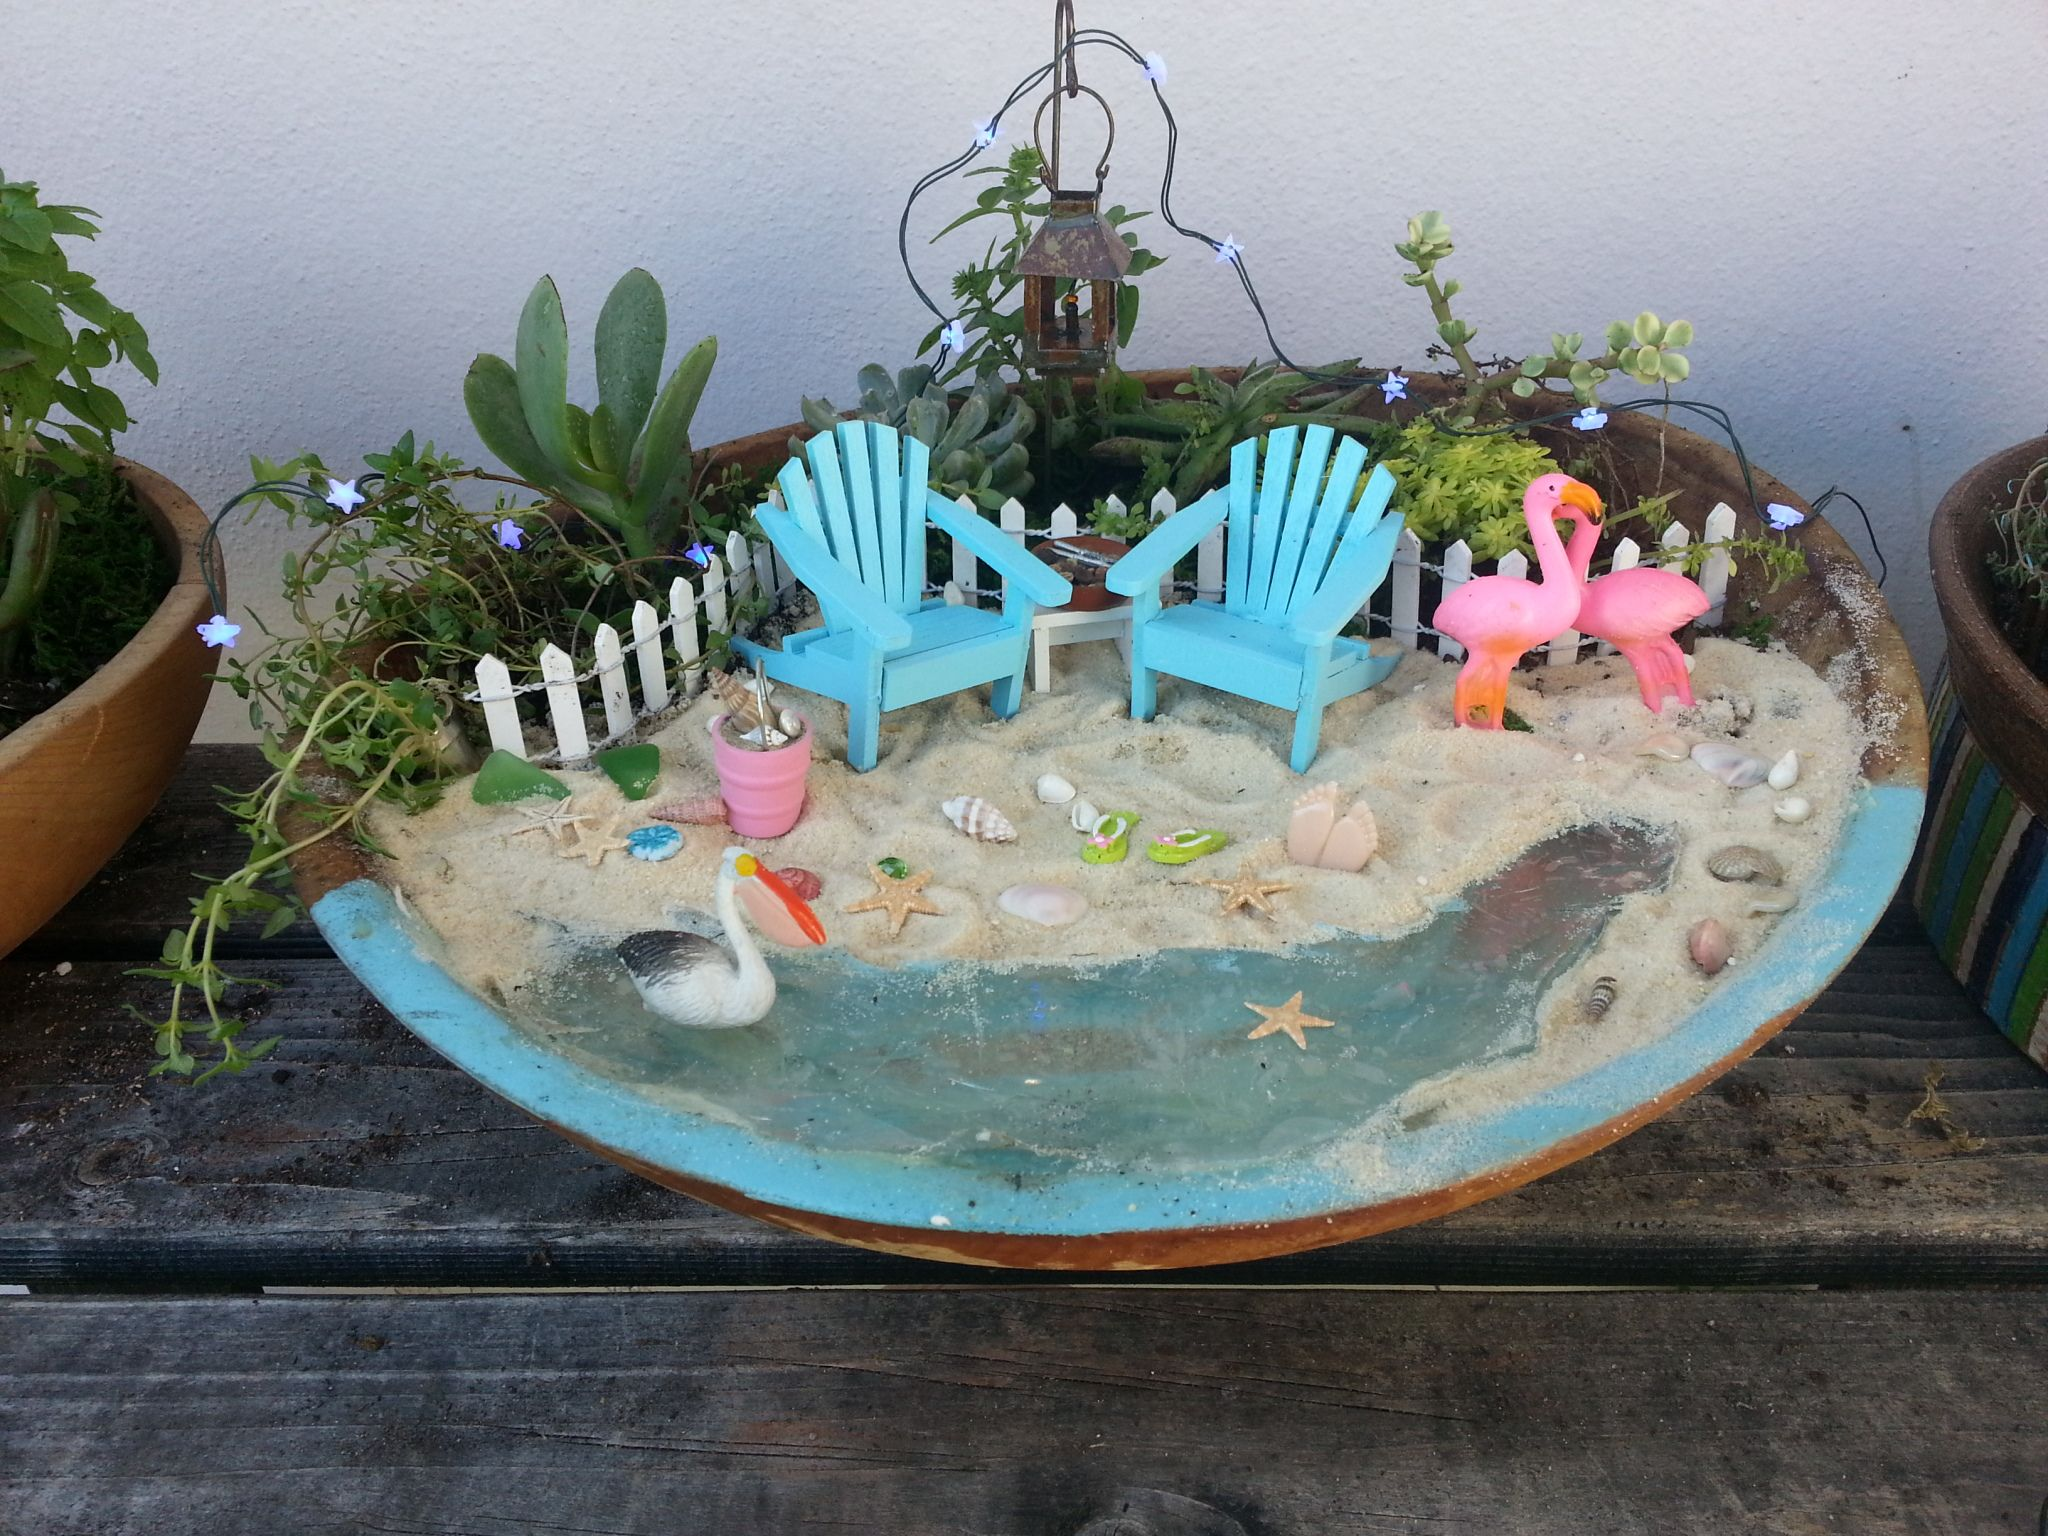 Explore Beach Fairy Garden, Fairies Garden, And More!